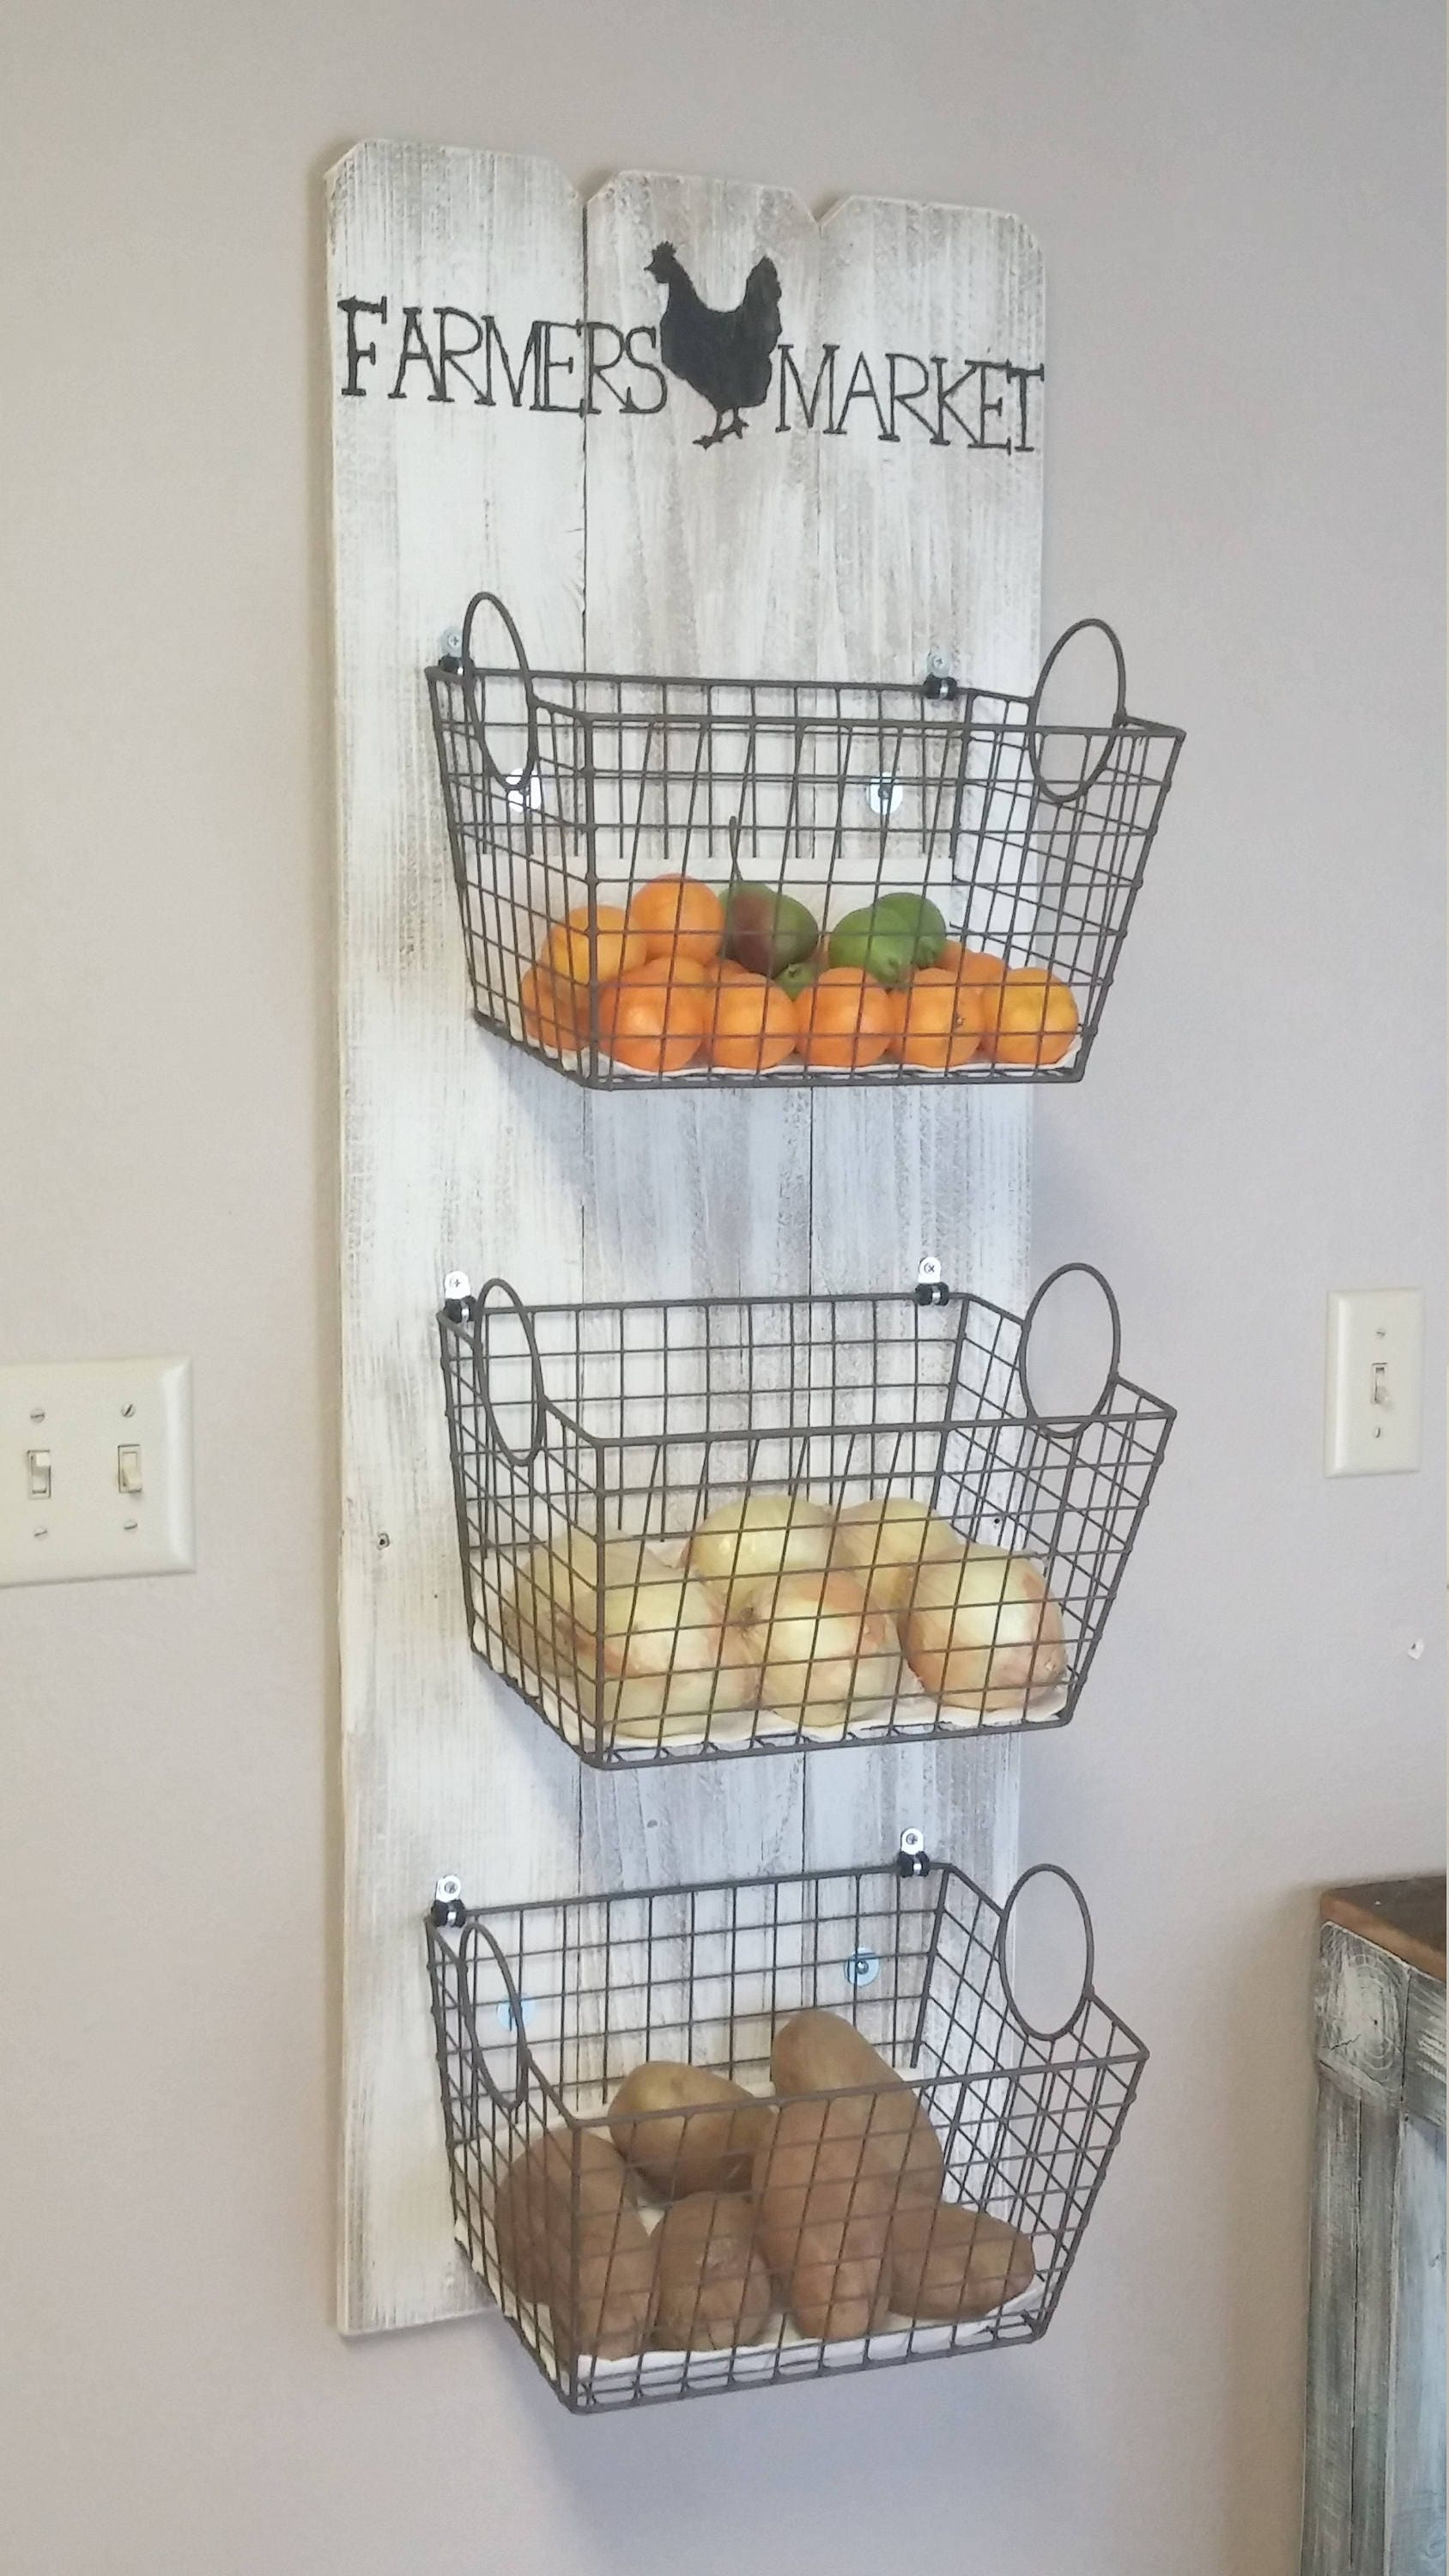 Farmers market basket wall decor farmers market produce storage farmers market basket wall decor farmers market produce storage rustic produce rack farmhouse style produce rack rustic kitchen decor amipublicfo Choice Image